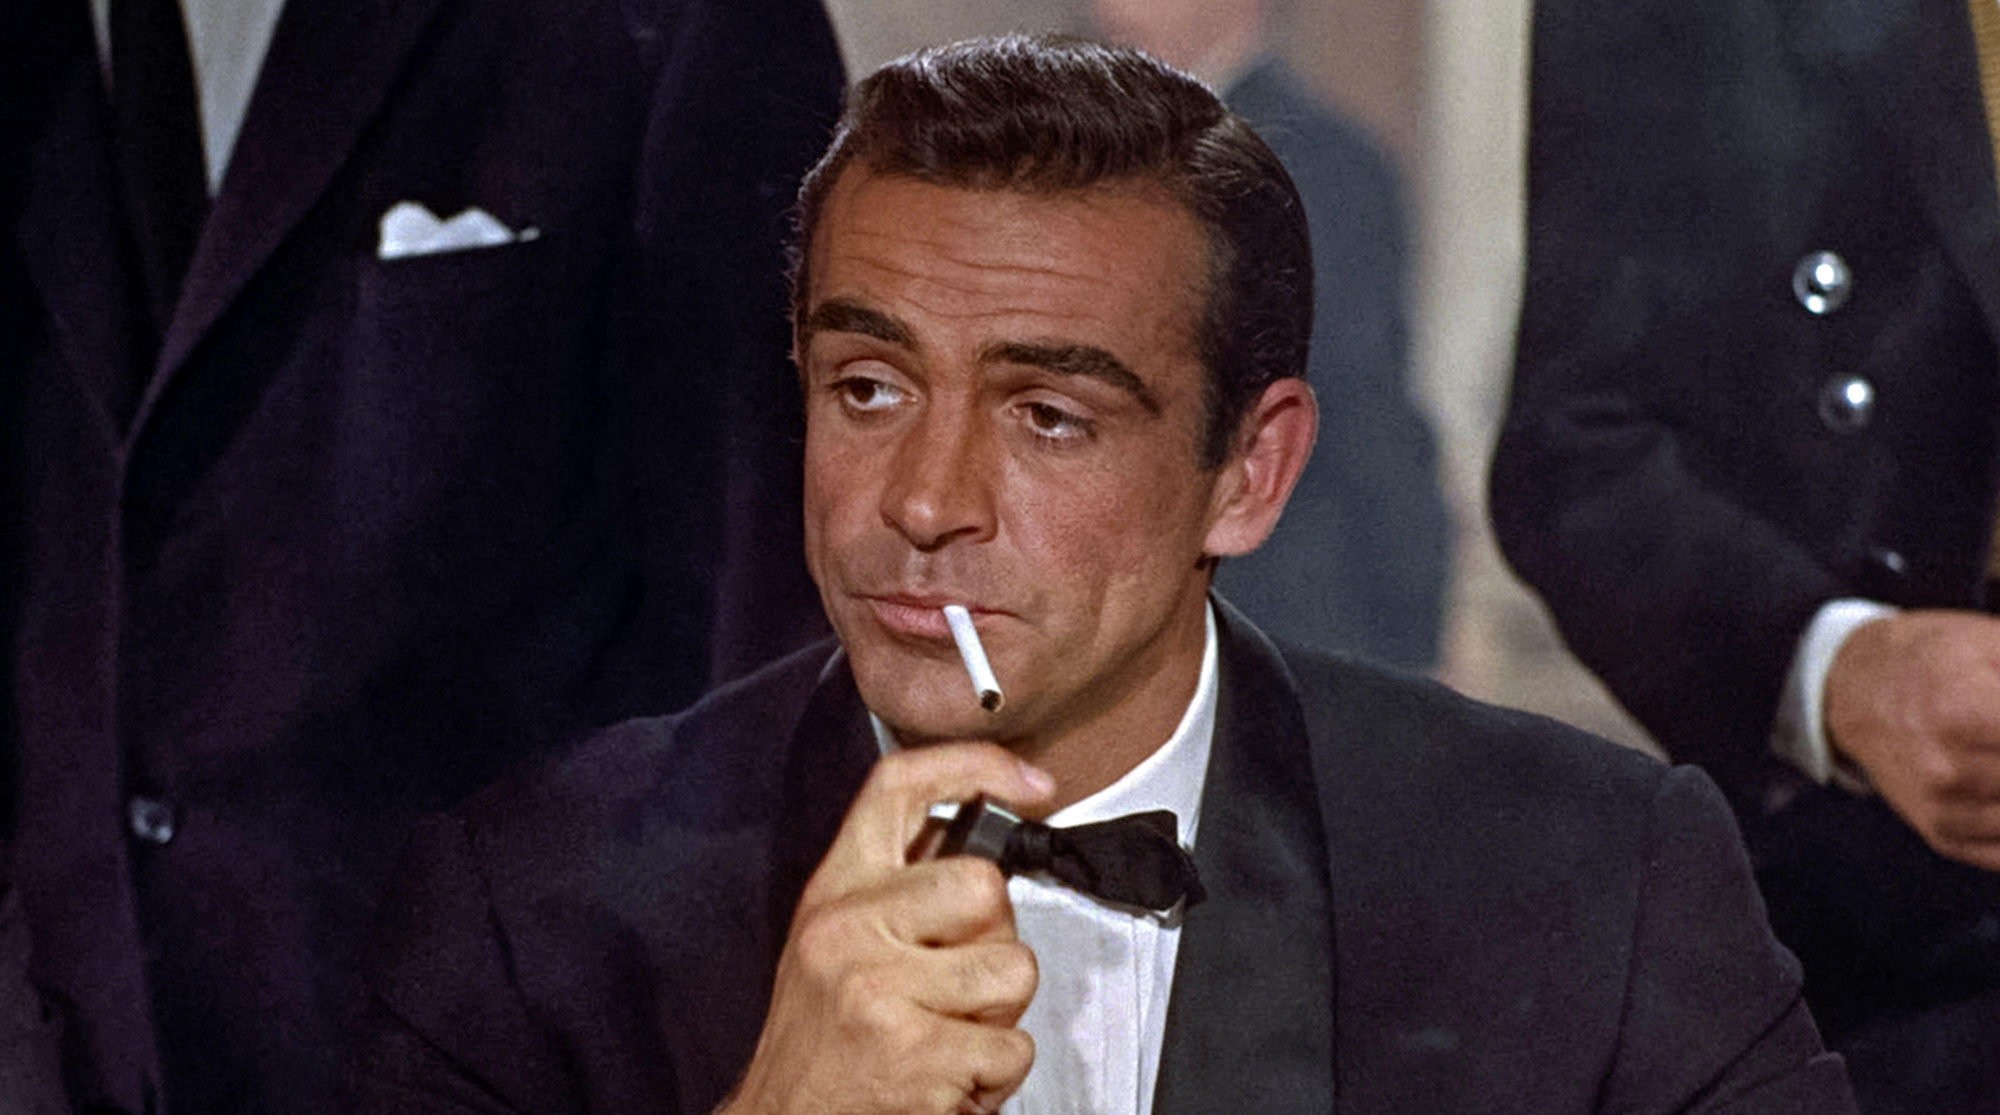 Eternal rules of style taught by Sean Connery, the original James Bond